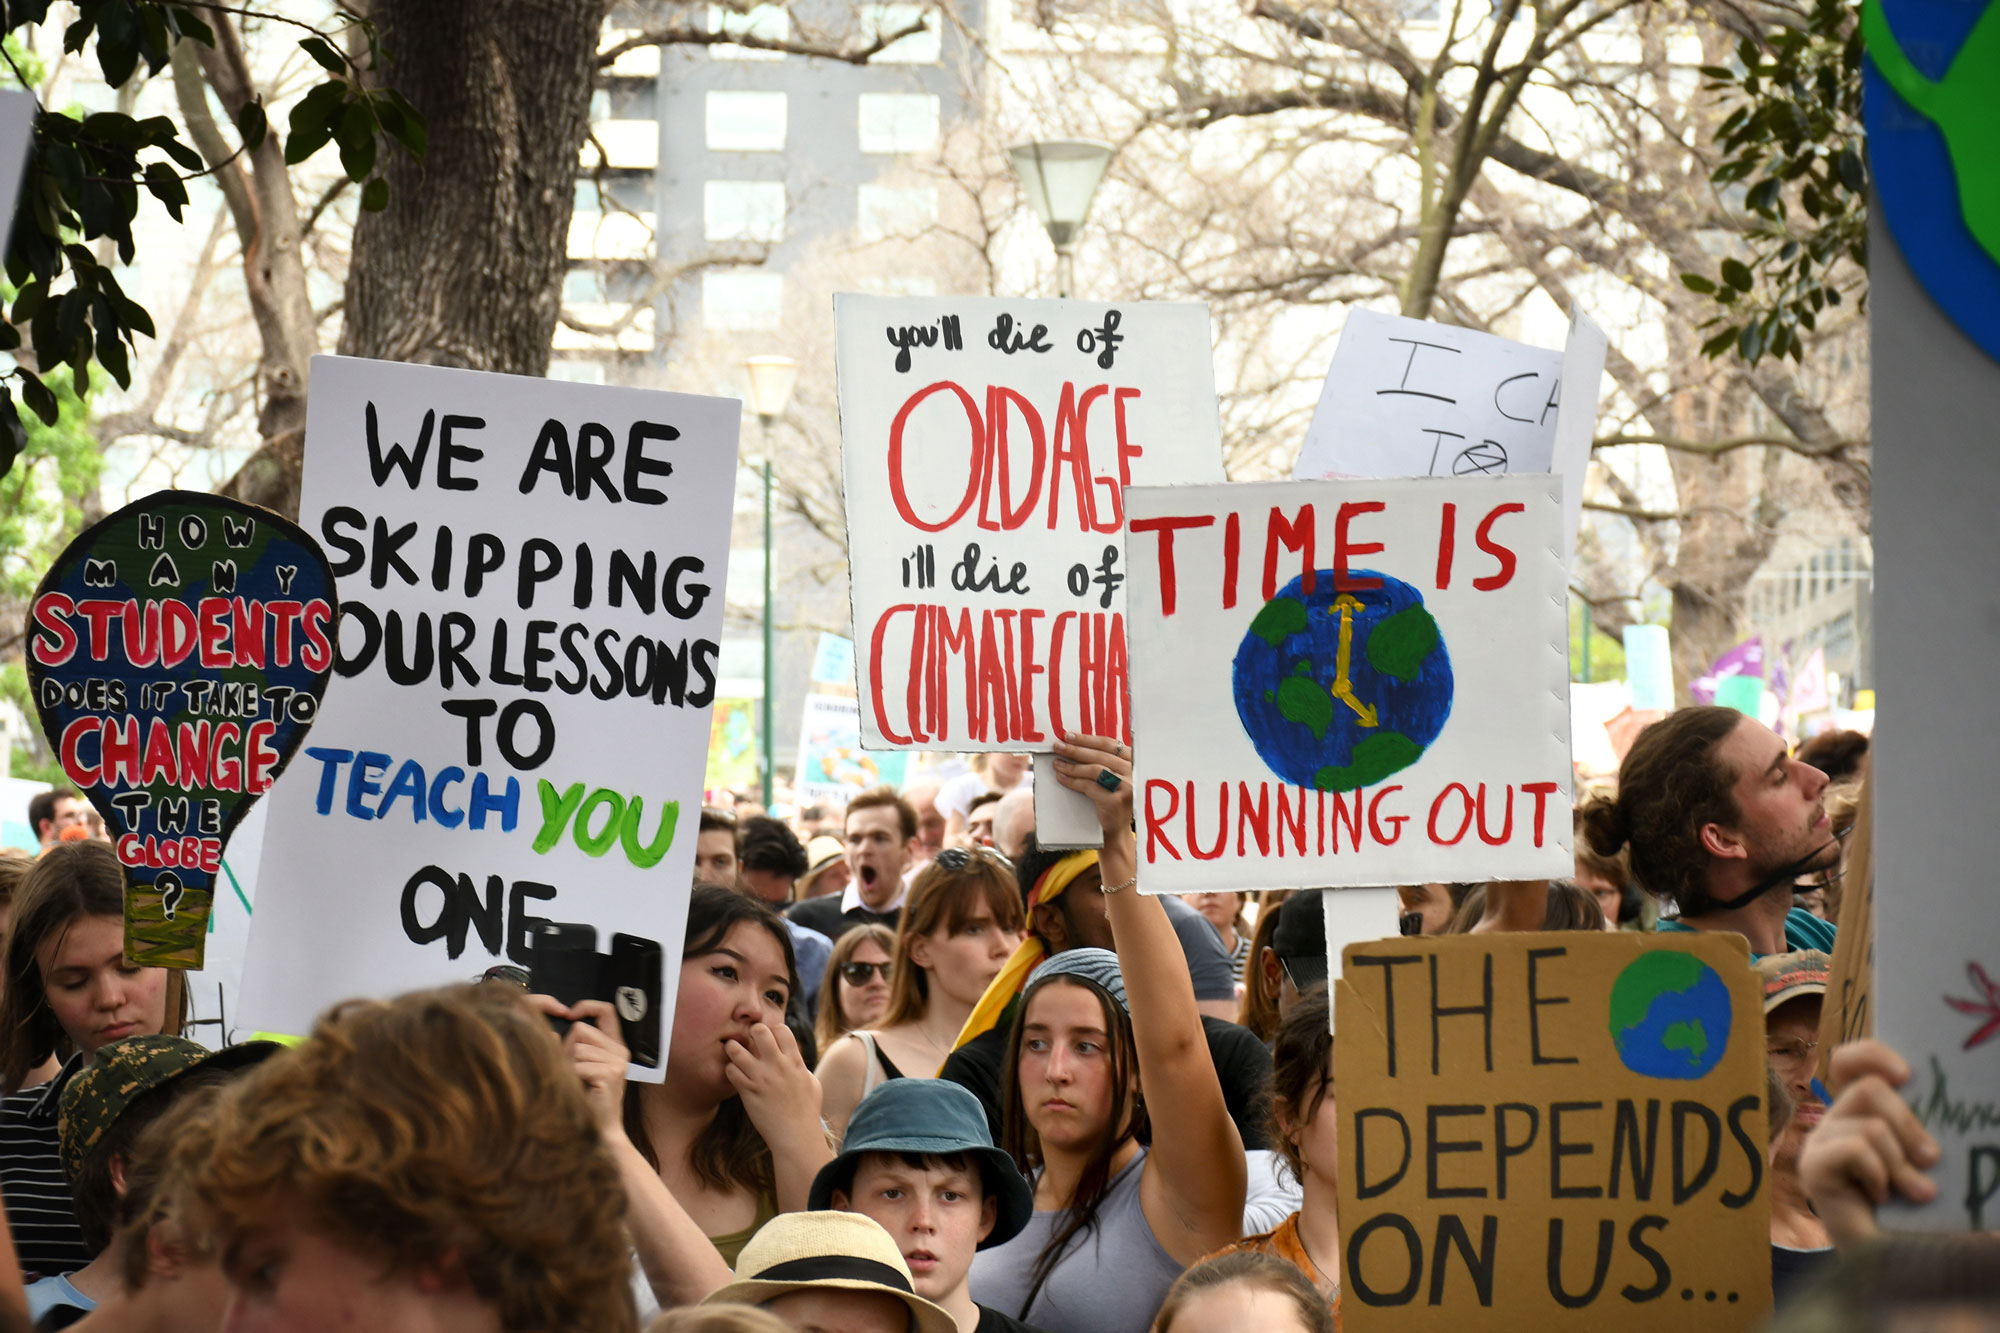 'The Earth depends on us': Climate activists taking it to the streets